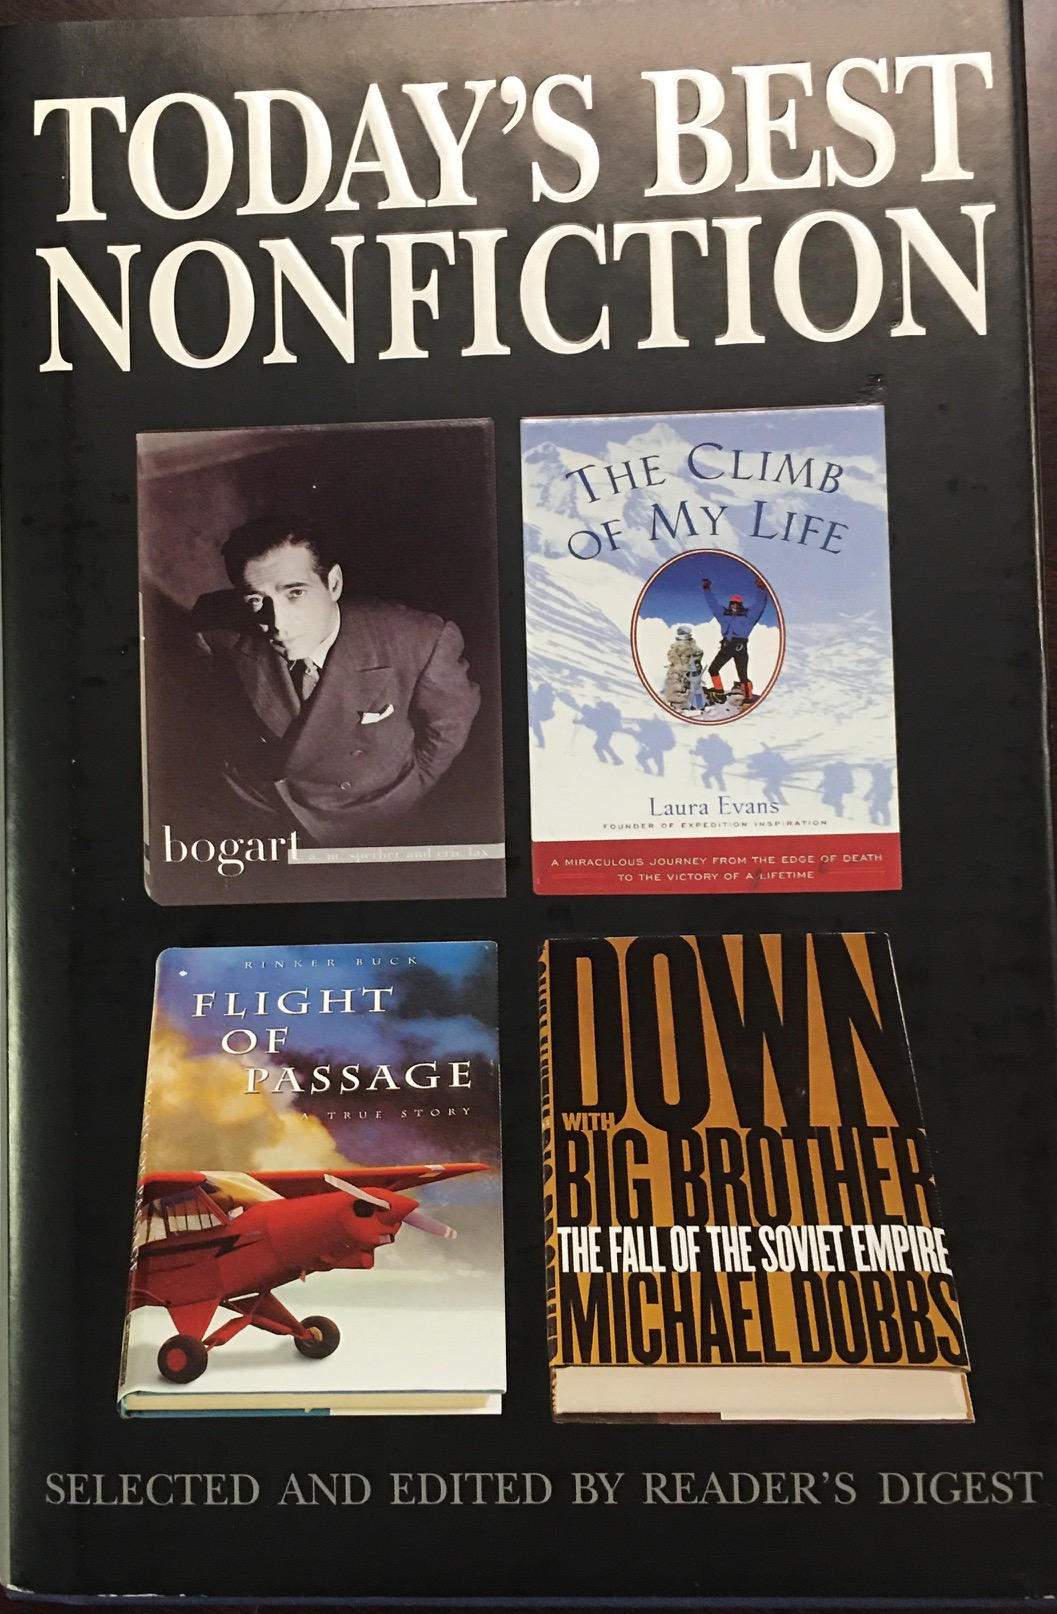 Image for Bogart / The Climb of My Life / Flight of Passage / Down with Big Brother (Today's Best Nonfiction: Volume 3, 1997)